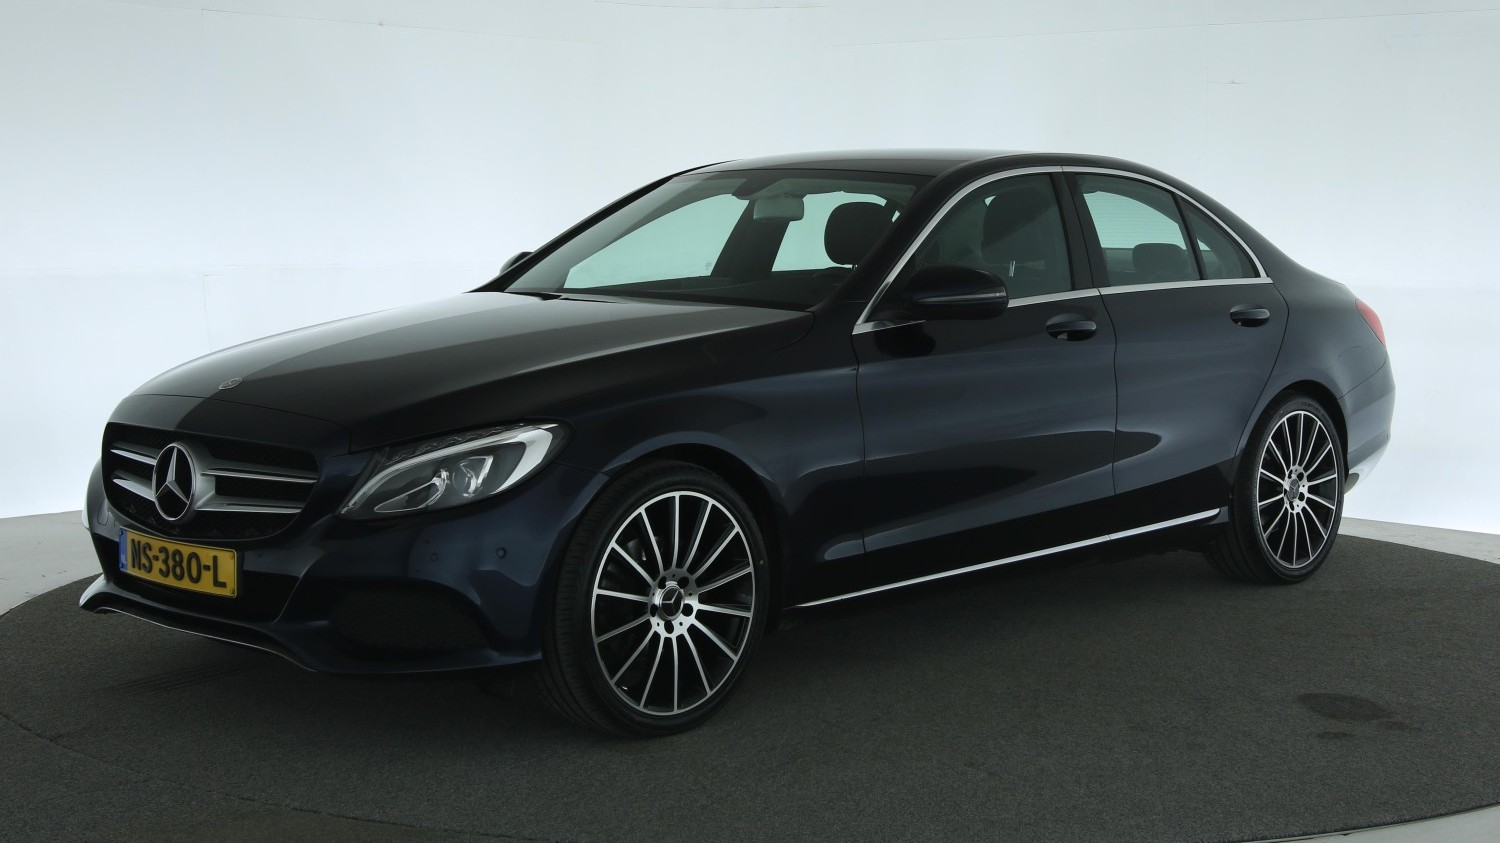 Mercedes-Benz C-klasse Sedan 2017 NS-380-L 1